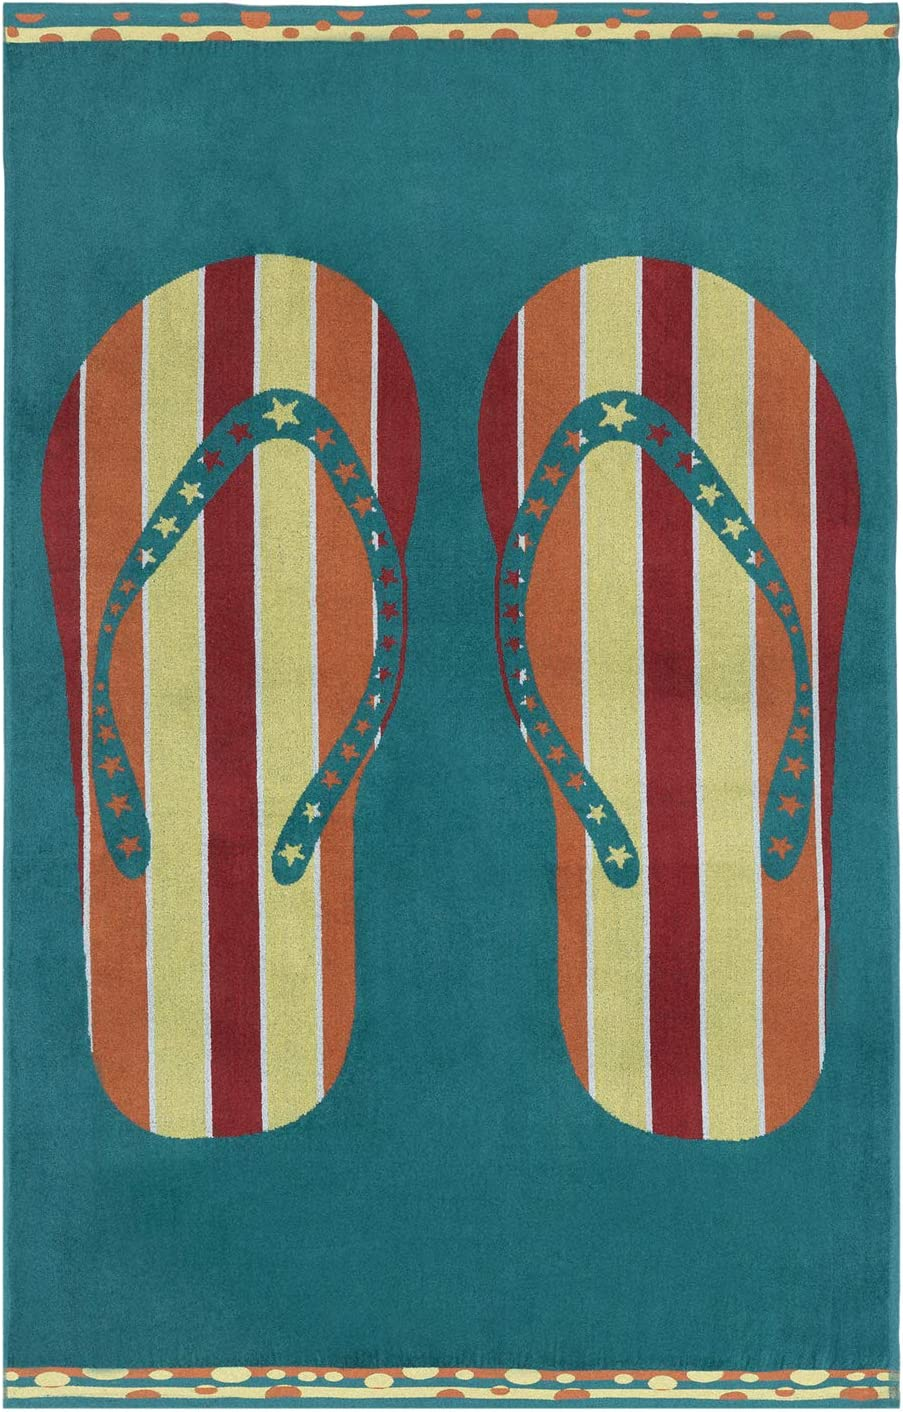 Espalma Oversized Luxury Flip Flops Sandals Beach Towel, Large Size 70 Inch x 40 Inch Soft Velour and Reversible Absorbent Cotton Terry, Thick and Plush Jacquard Beach Towel, Flip Flops